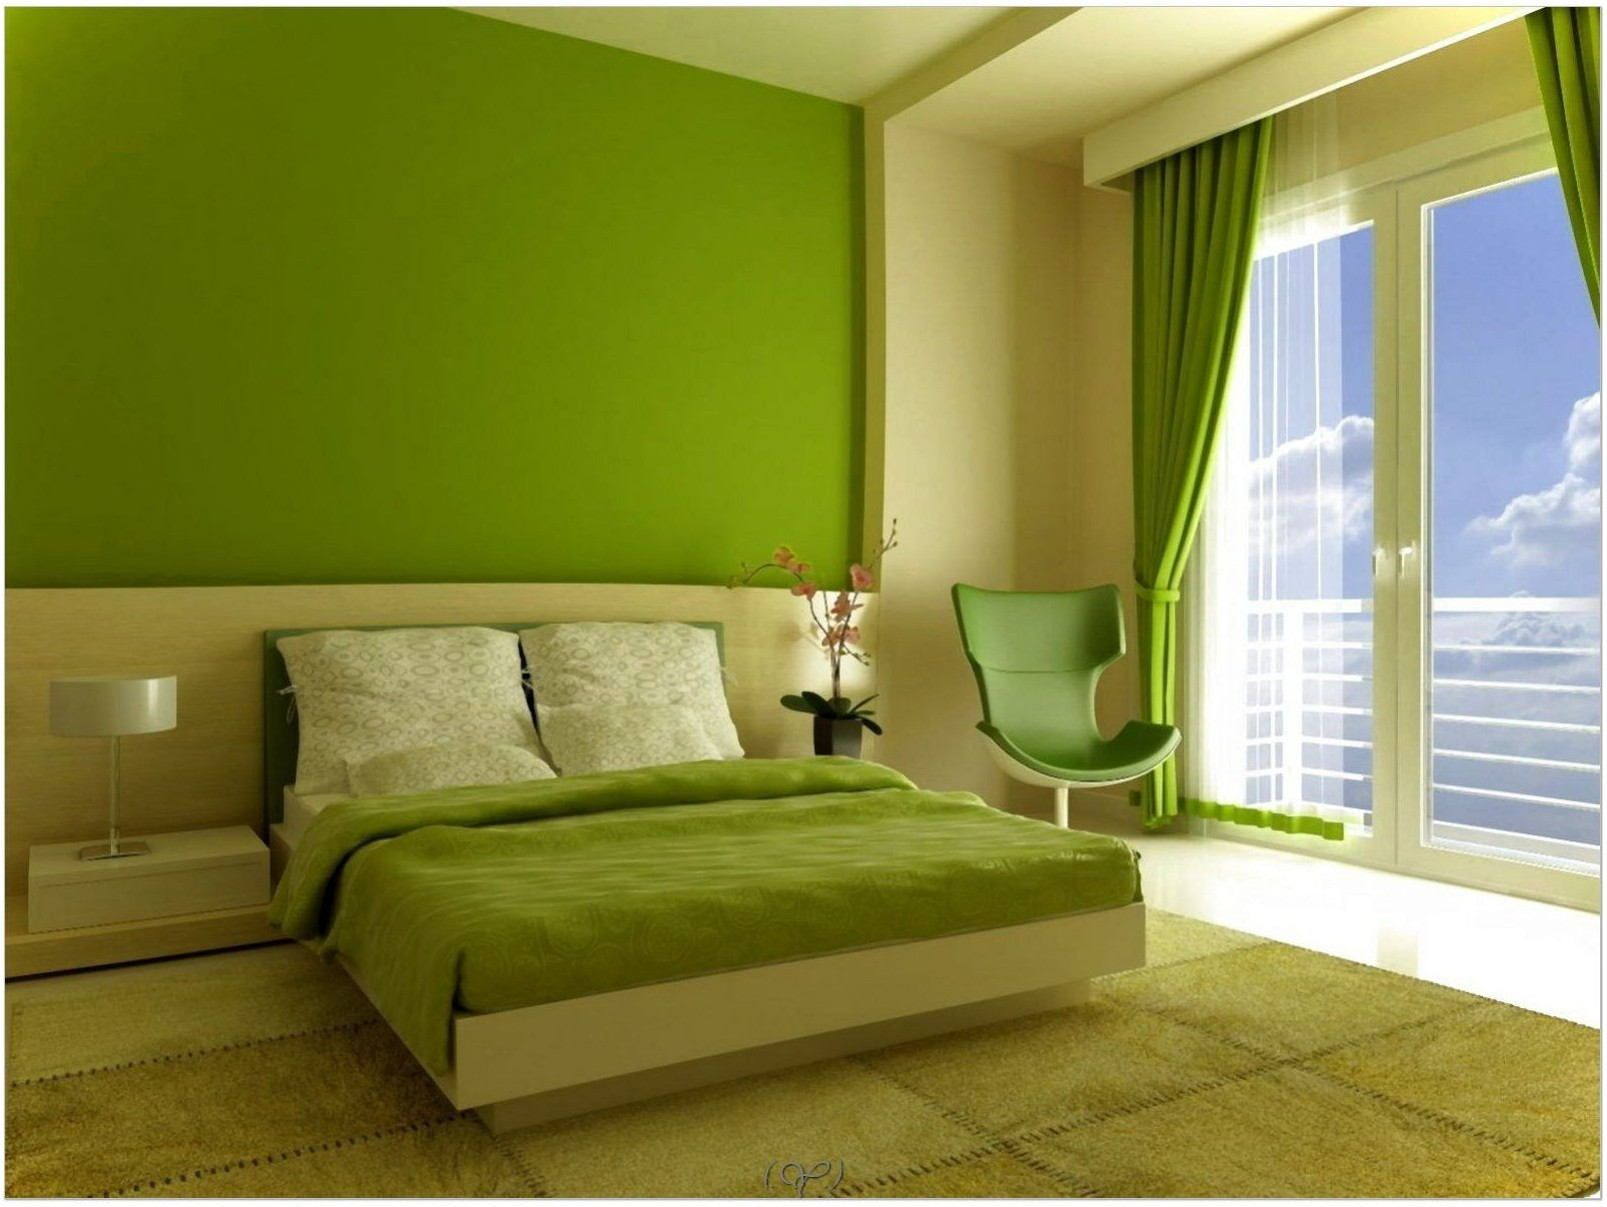 Painting Ideas For Living Room India Bedroom Color Combination Bedroom Color Schemes Green Bedroom Colors